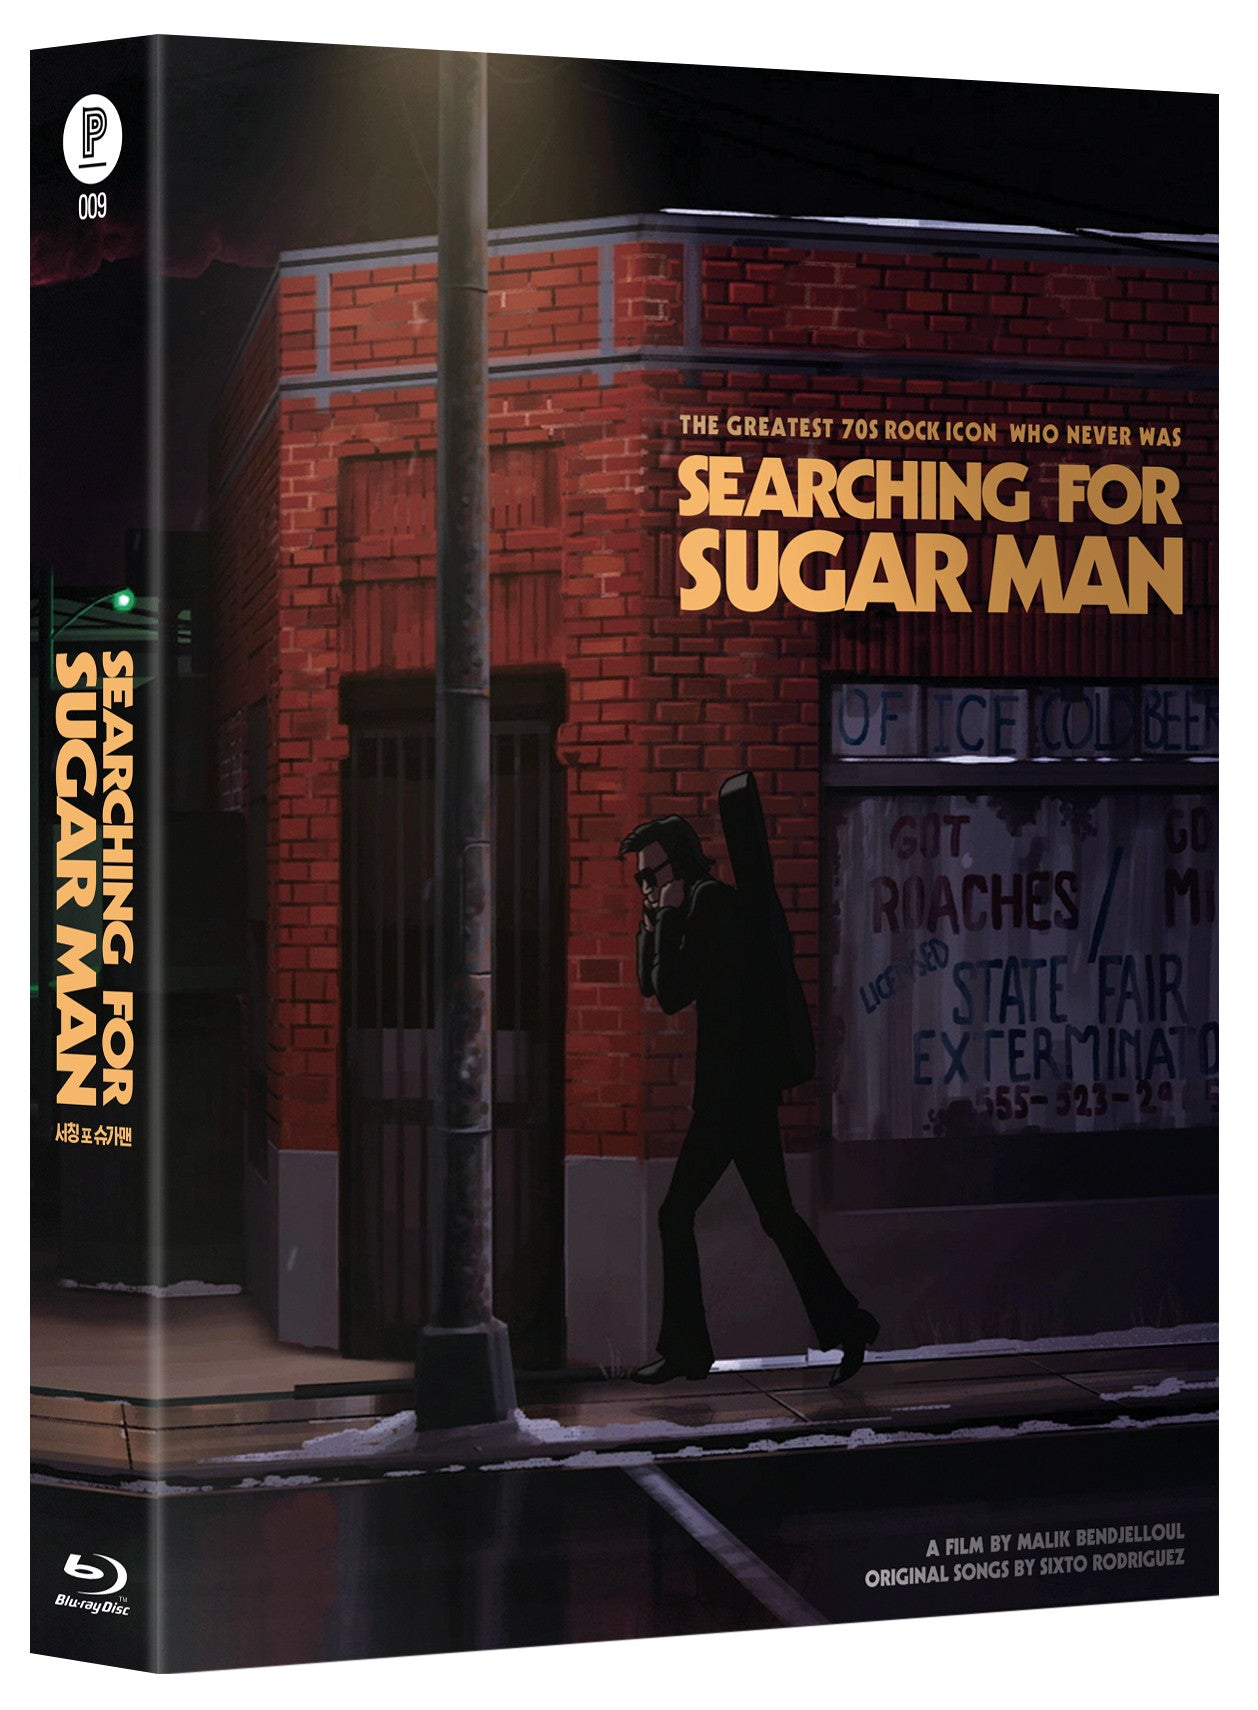 SEARCHING FOR SUGARMAN (Design B) : EXCLUSIVE & LIMITED EDITION (PA009)